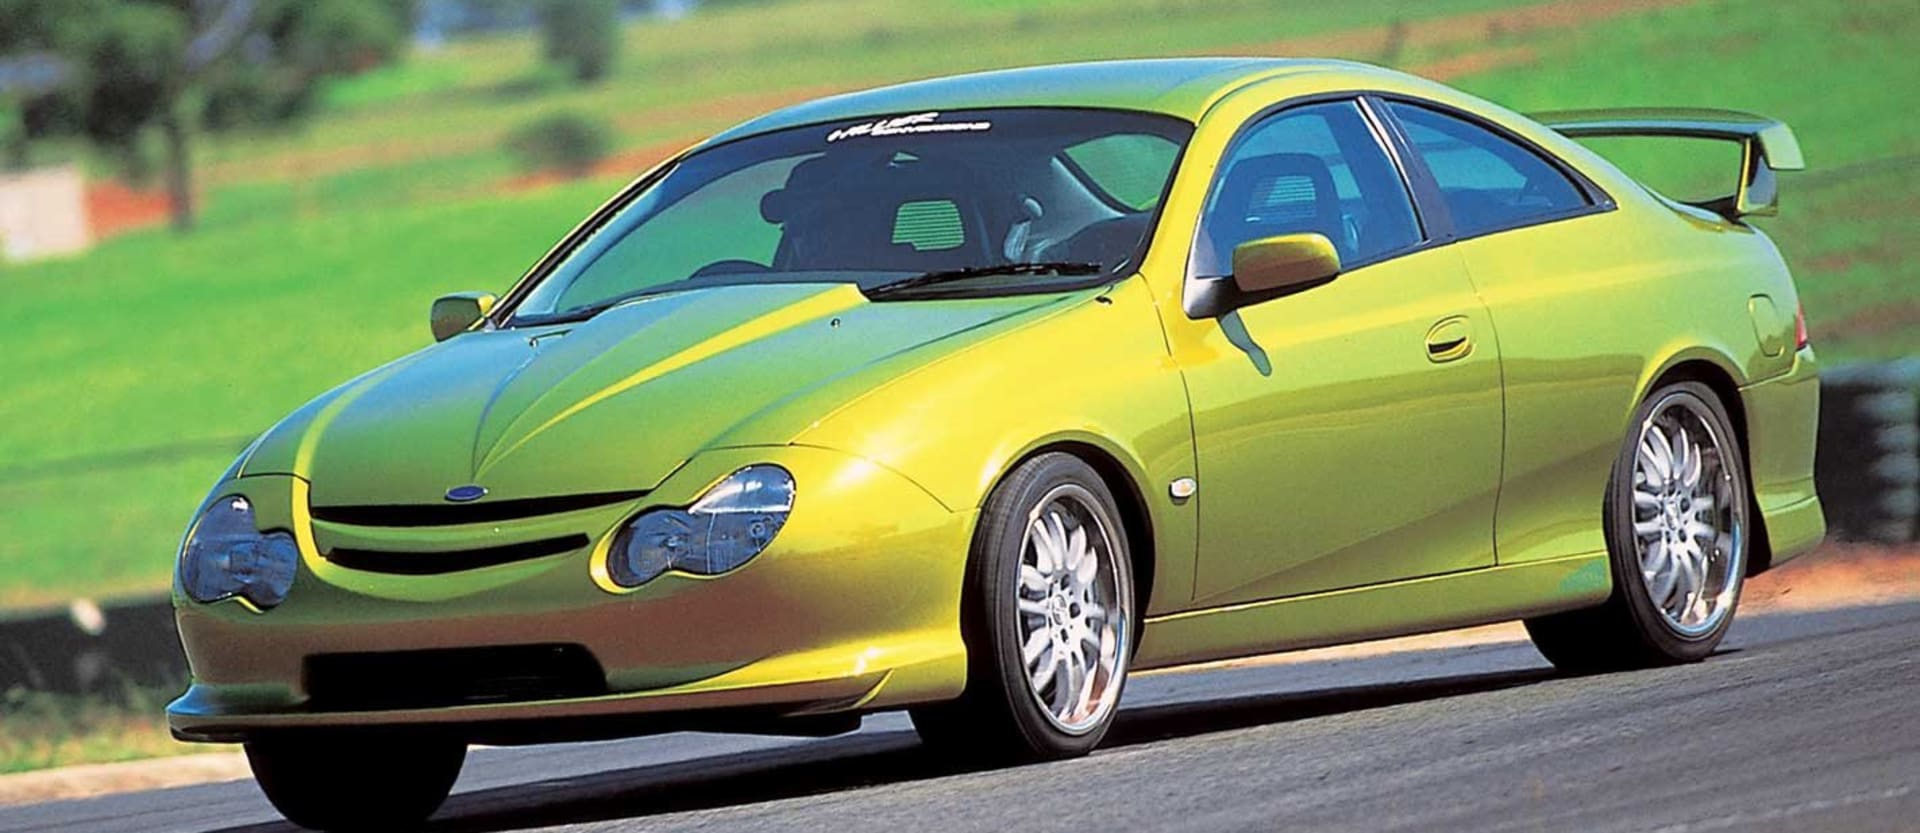 2002 Ford Arrow Coupe review classic MOTOR